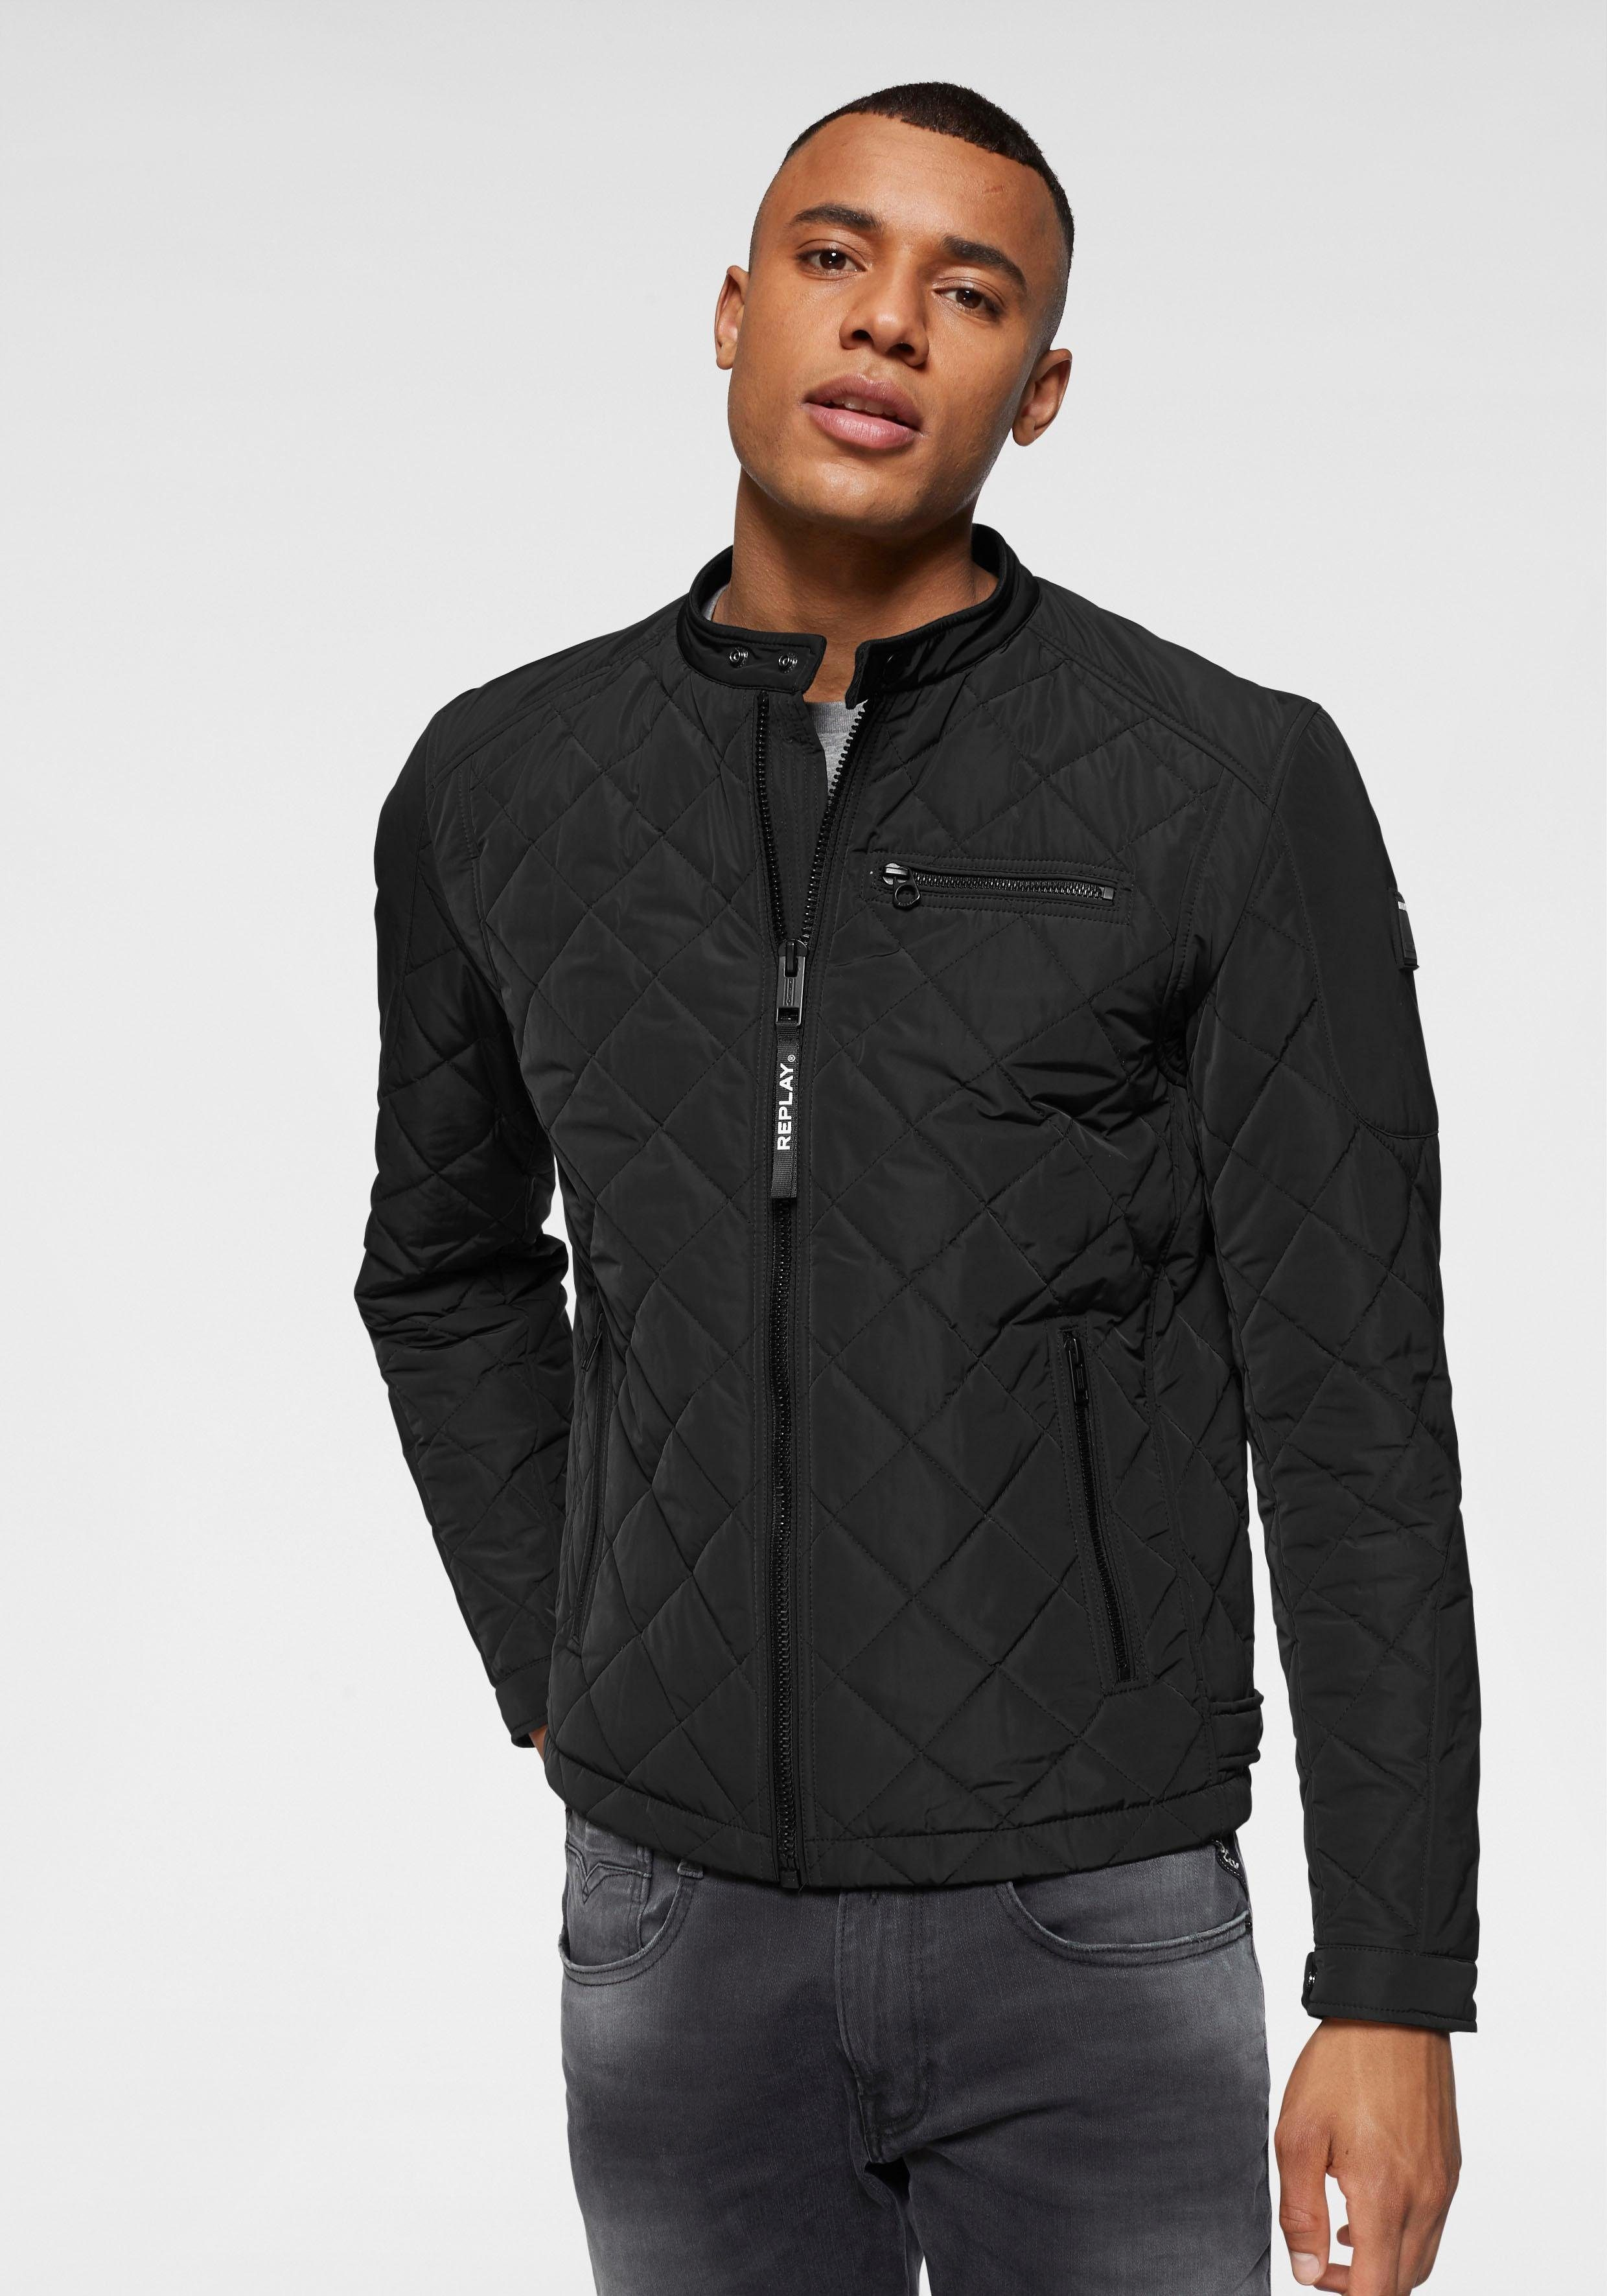 Steppjacke In KaufenOtto Replay Rautenform Online 7gY6yvbIf